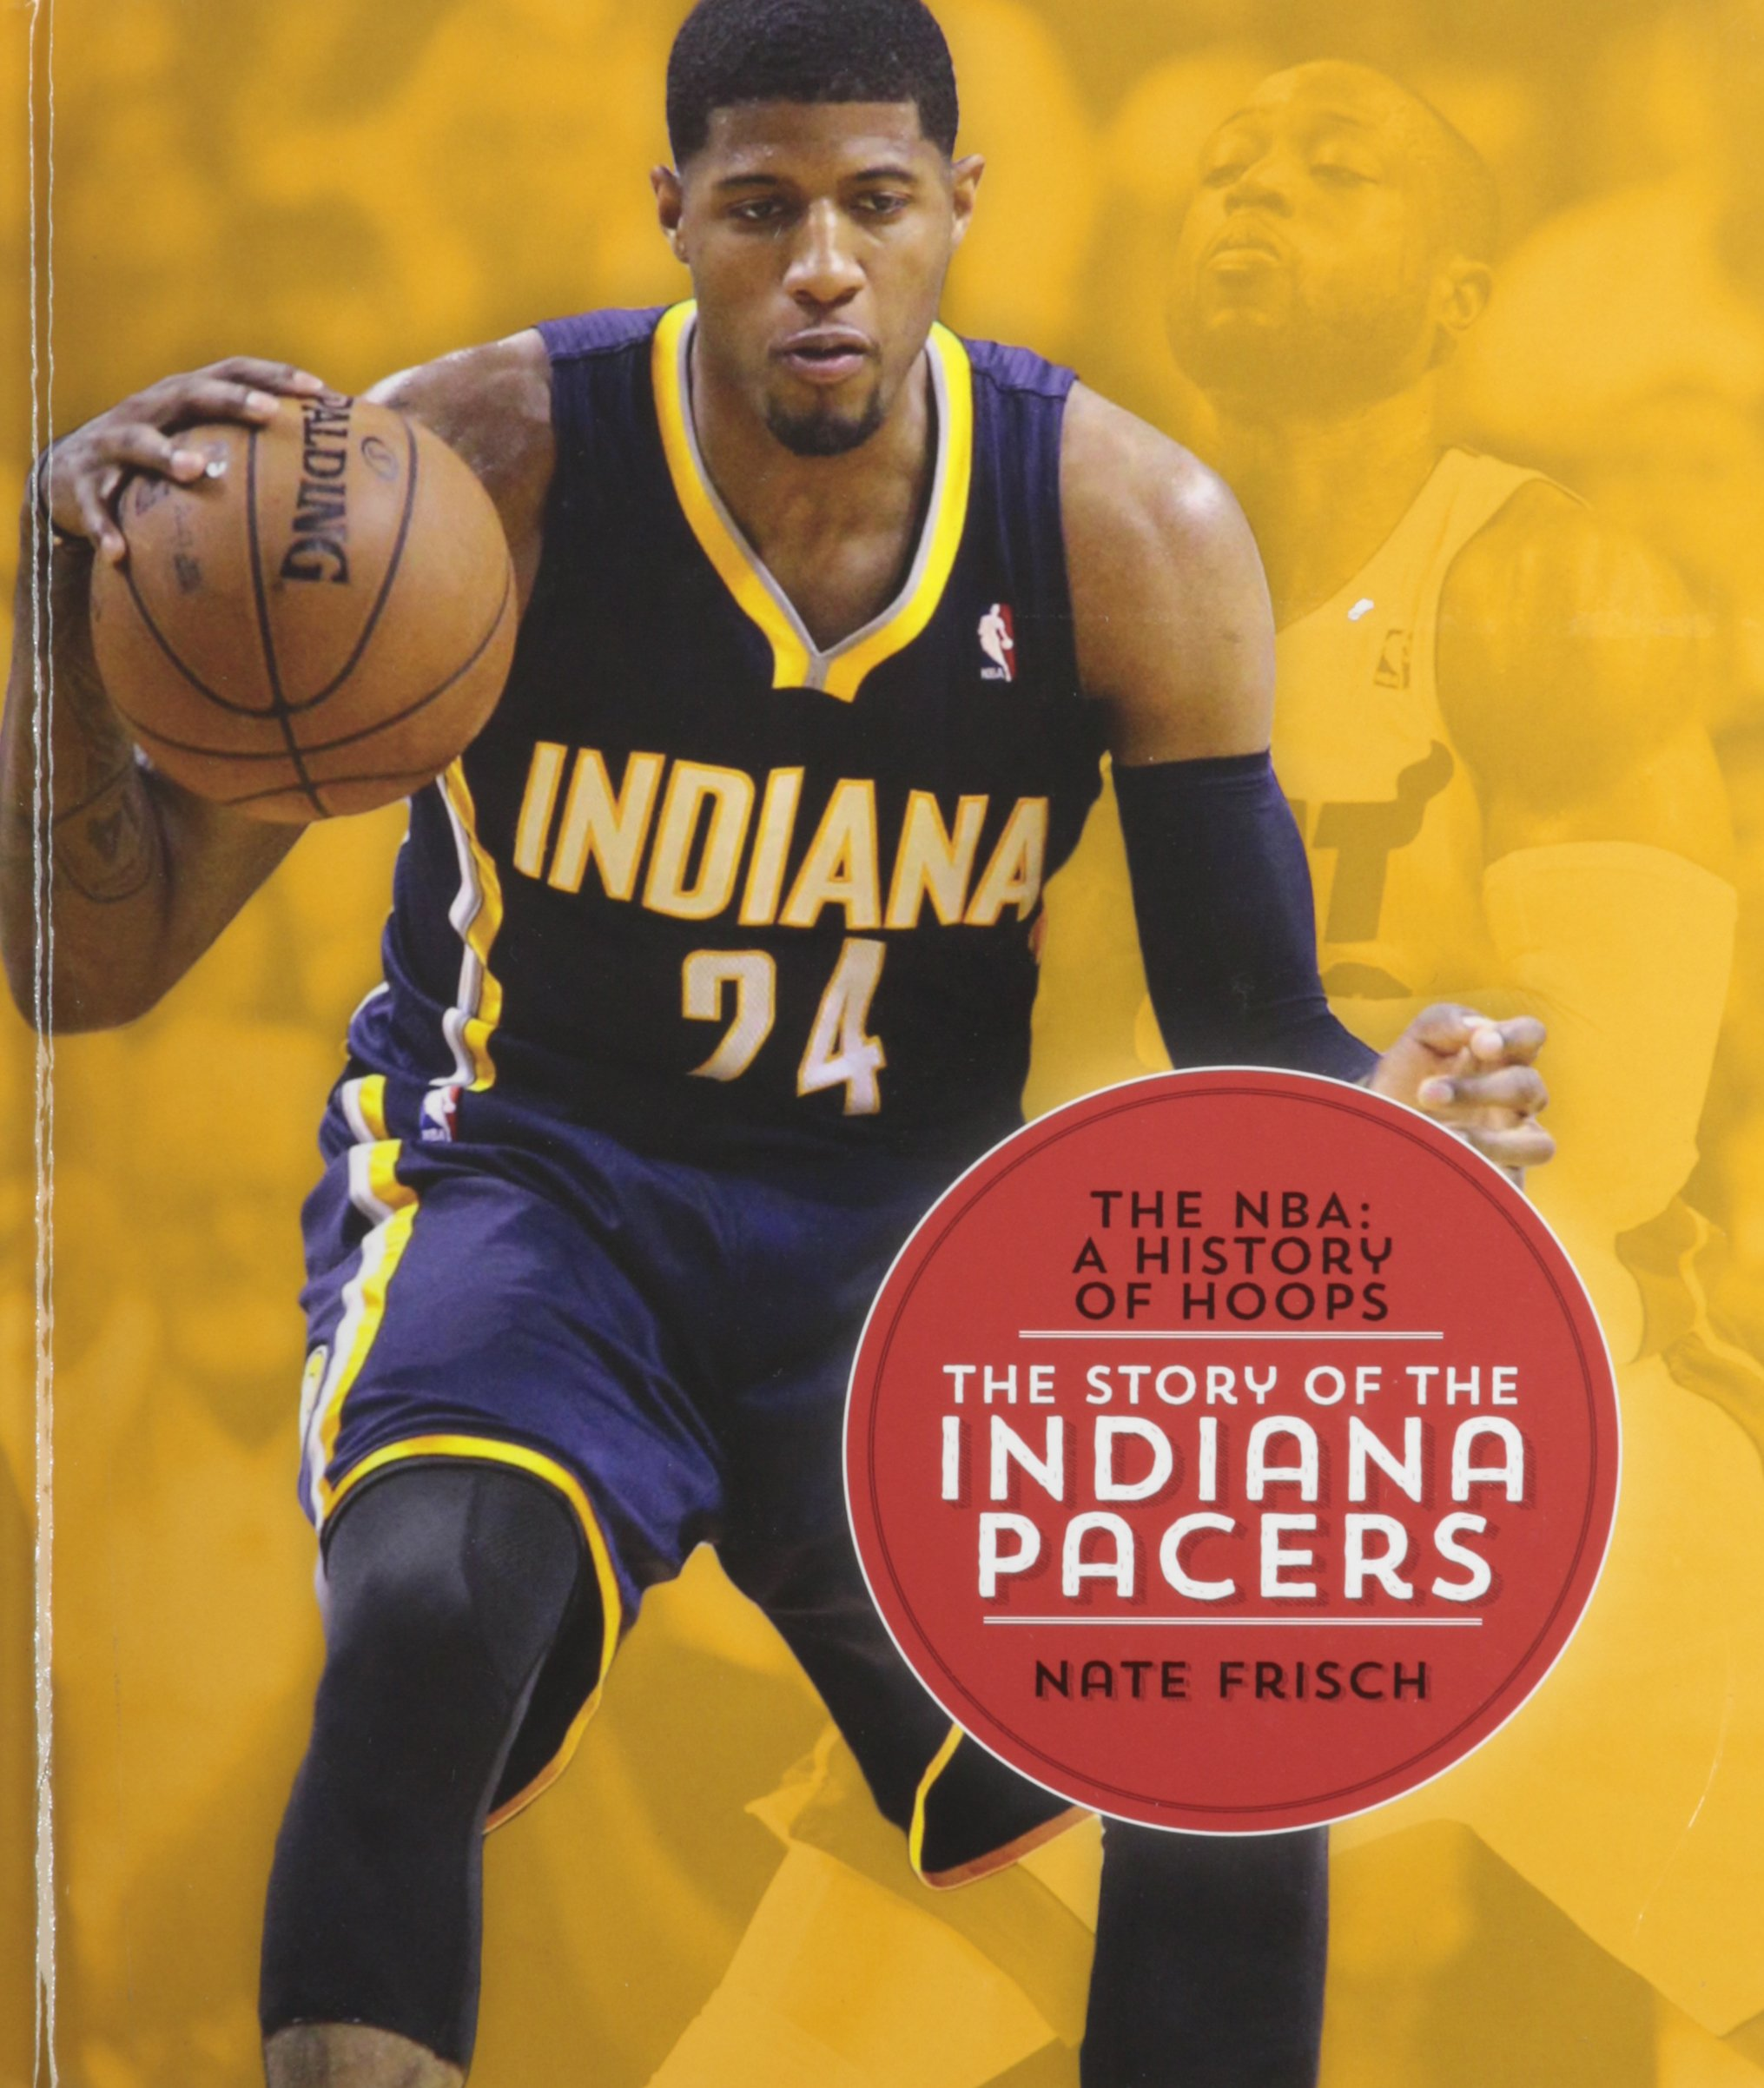 The Story of the Indiana Pacers (NBA: A History of Hoops (Hardcover)) PDF